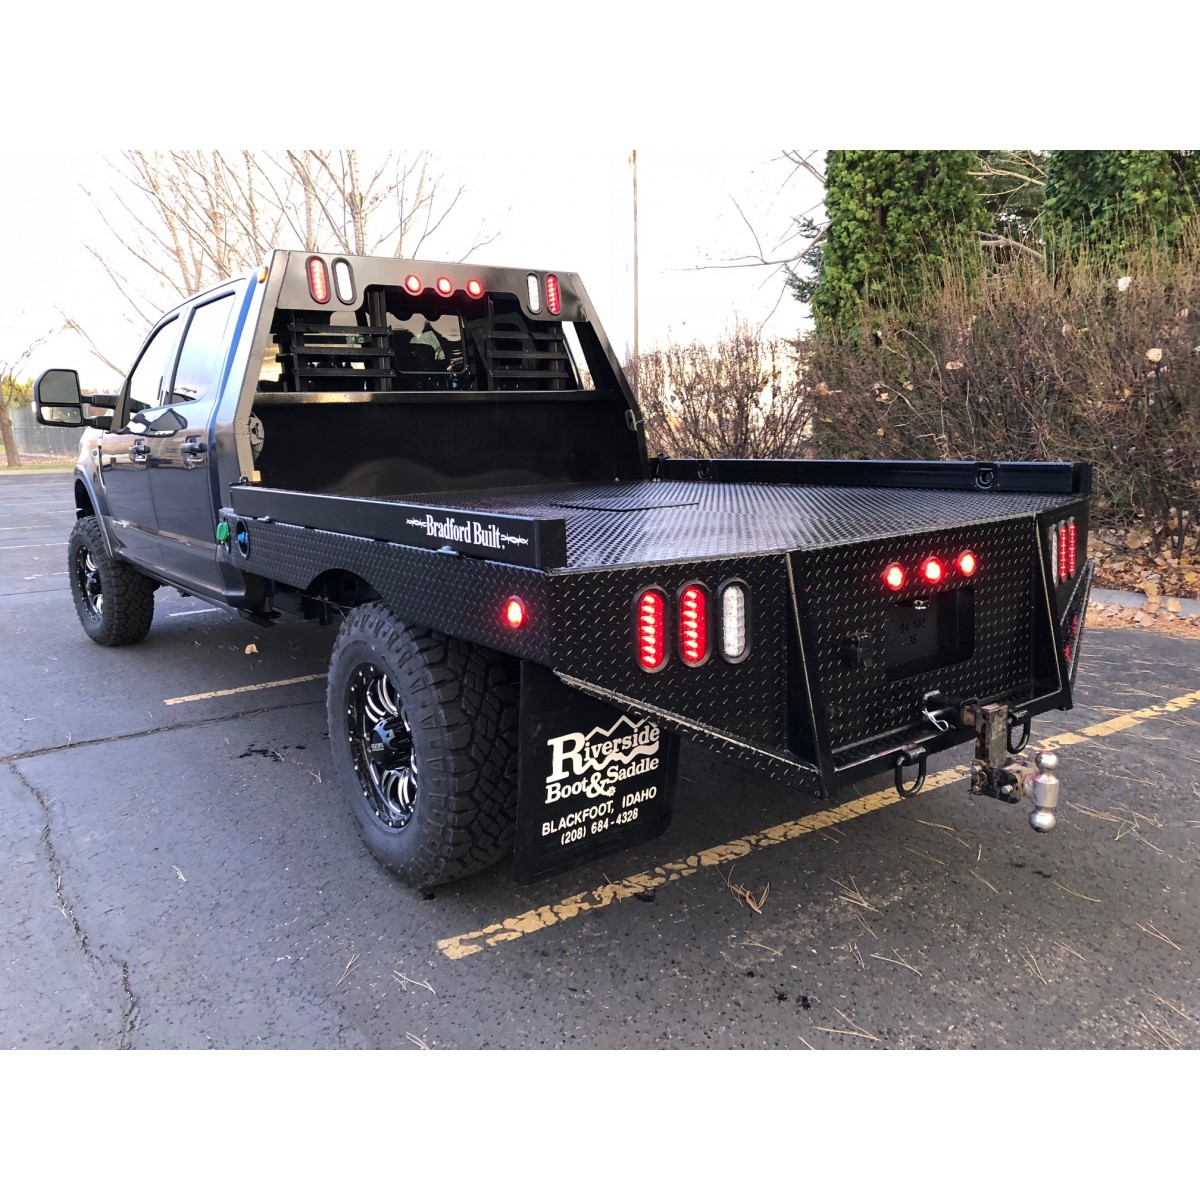 Bradford Built Flatbed Work Bed